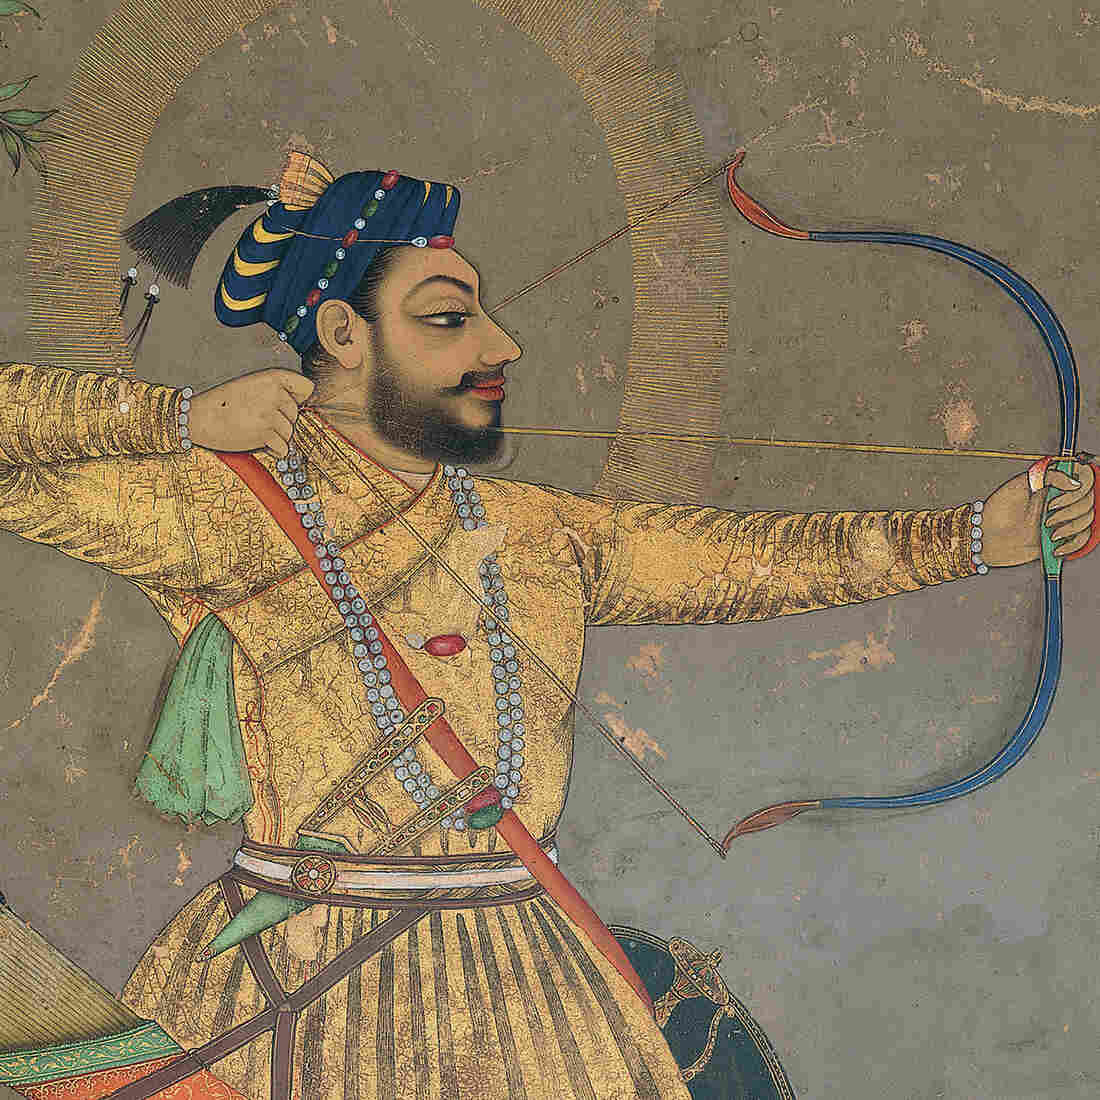 Opulent And Apolitical: The Art Of The Met's Islamic Galleries